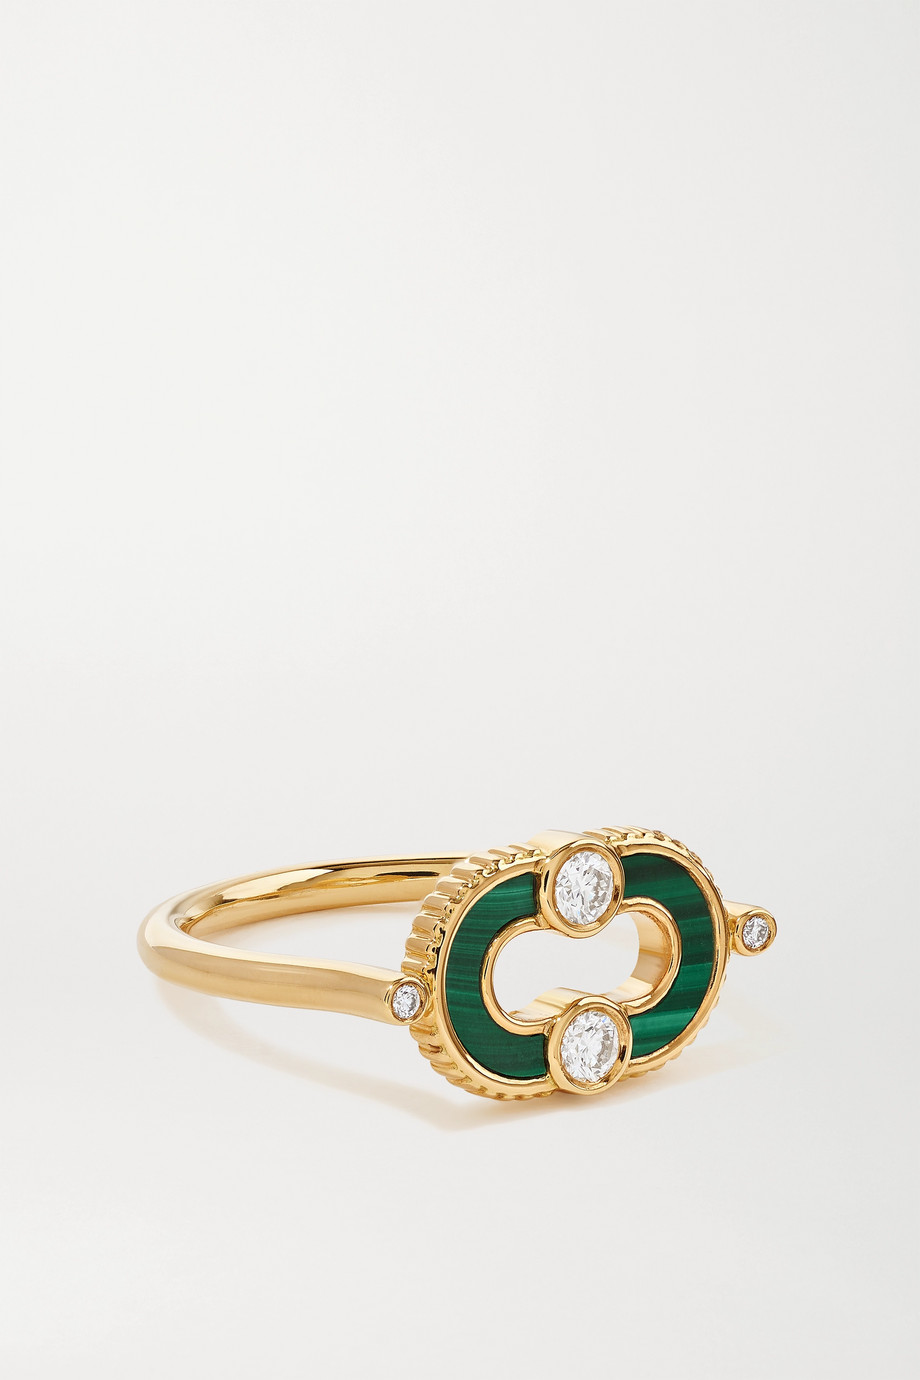 Viltier Bague en or 18 carats, malachite et diamants Magnetic